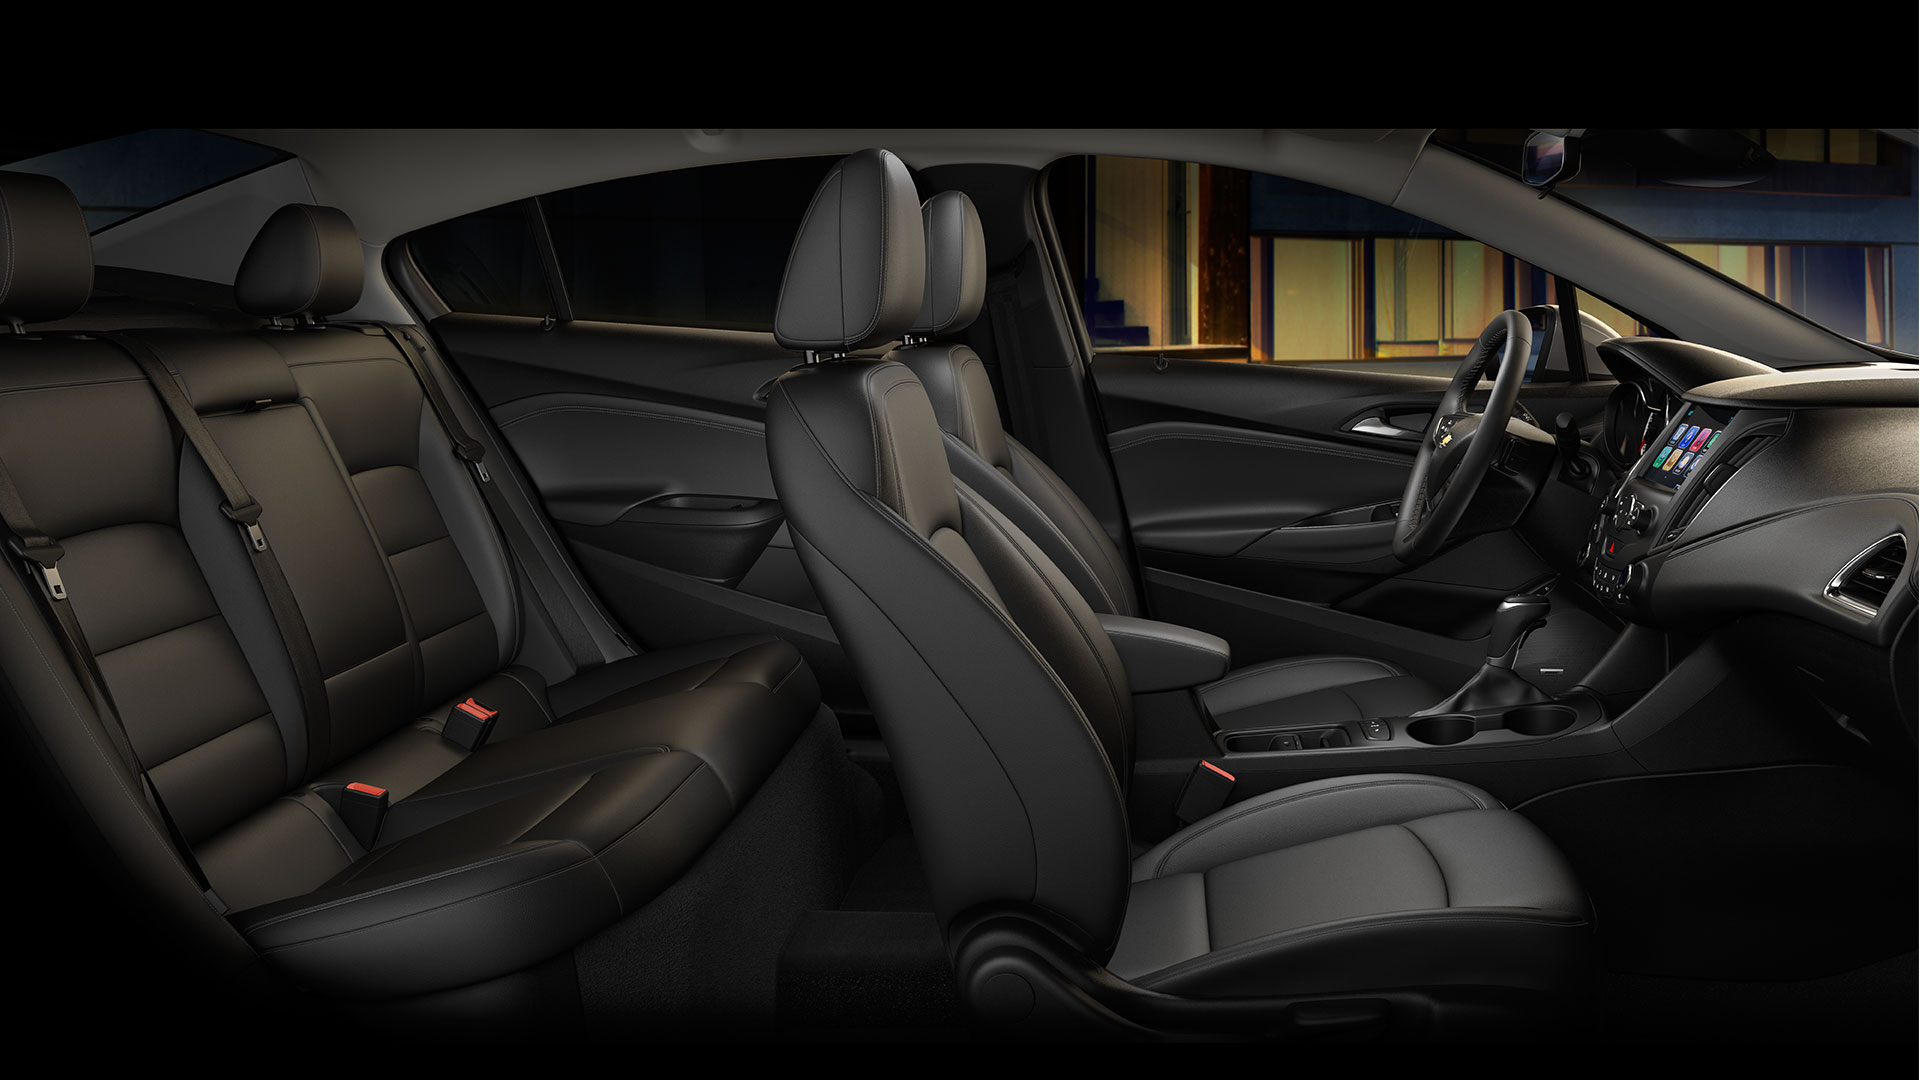 Space for Everyone Inside the Cruze!